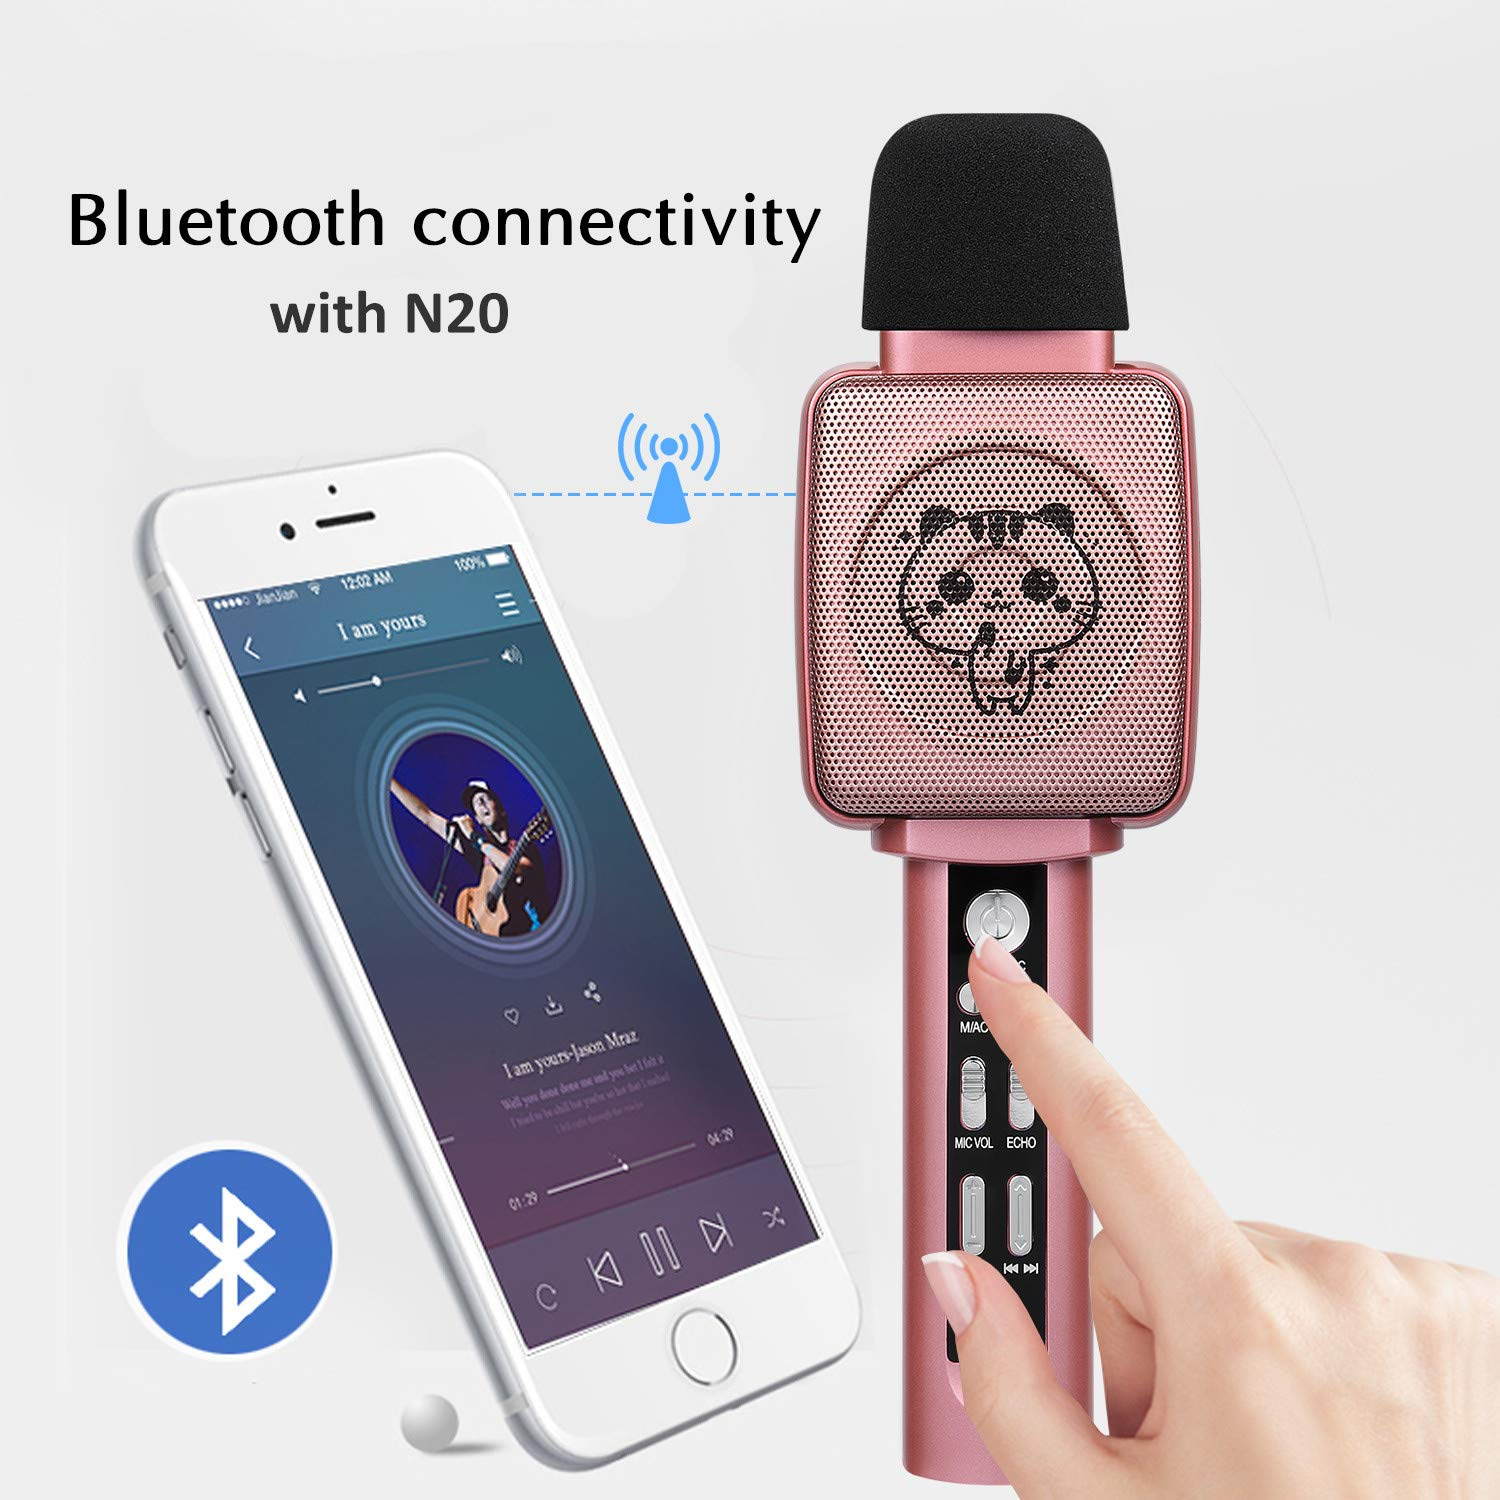 HOKLAN Kids Karaoke Microphone, Birthday Gifts for 3 4 5 6 7 8 9 Years Old Kids Girls, Birthday Presents & Toys for Children, Handheld Bluetooth Karaoke Machine with Voice Changer & Built-in Speaker by HOKLAN (Image #6)